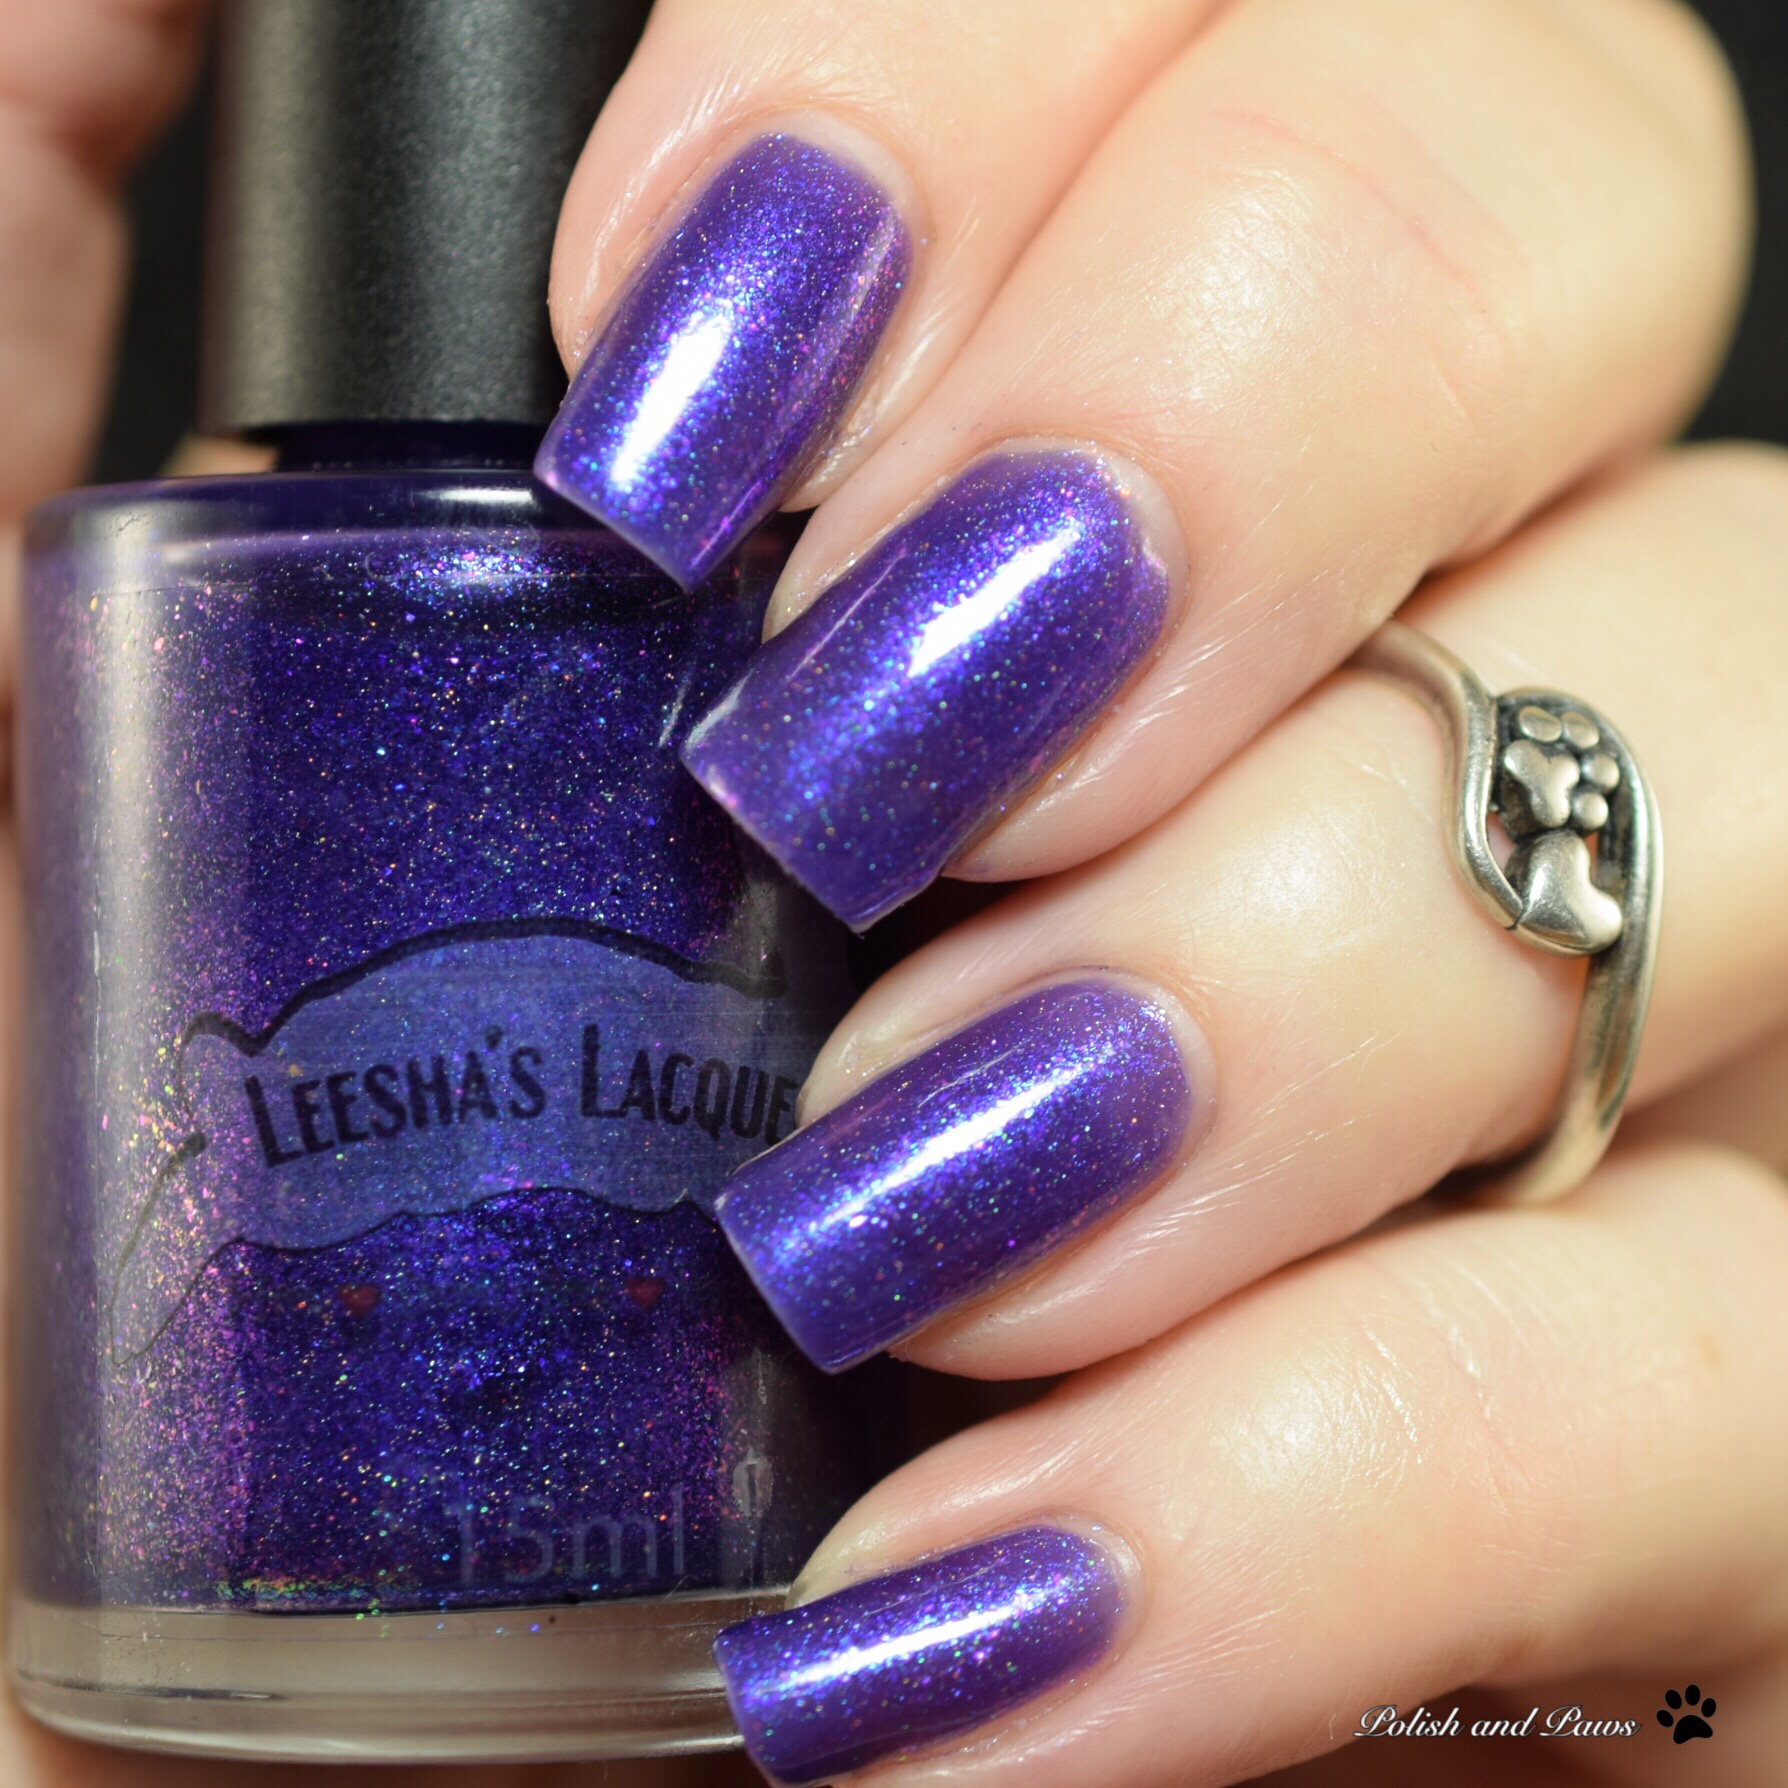 Leesha's Lacquer Time & Space August OOAK